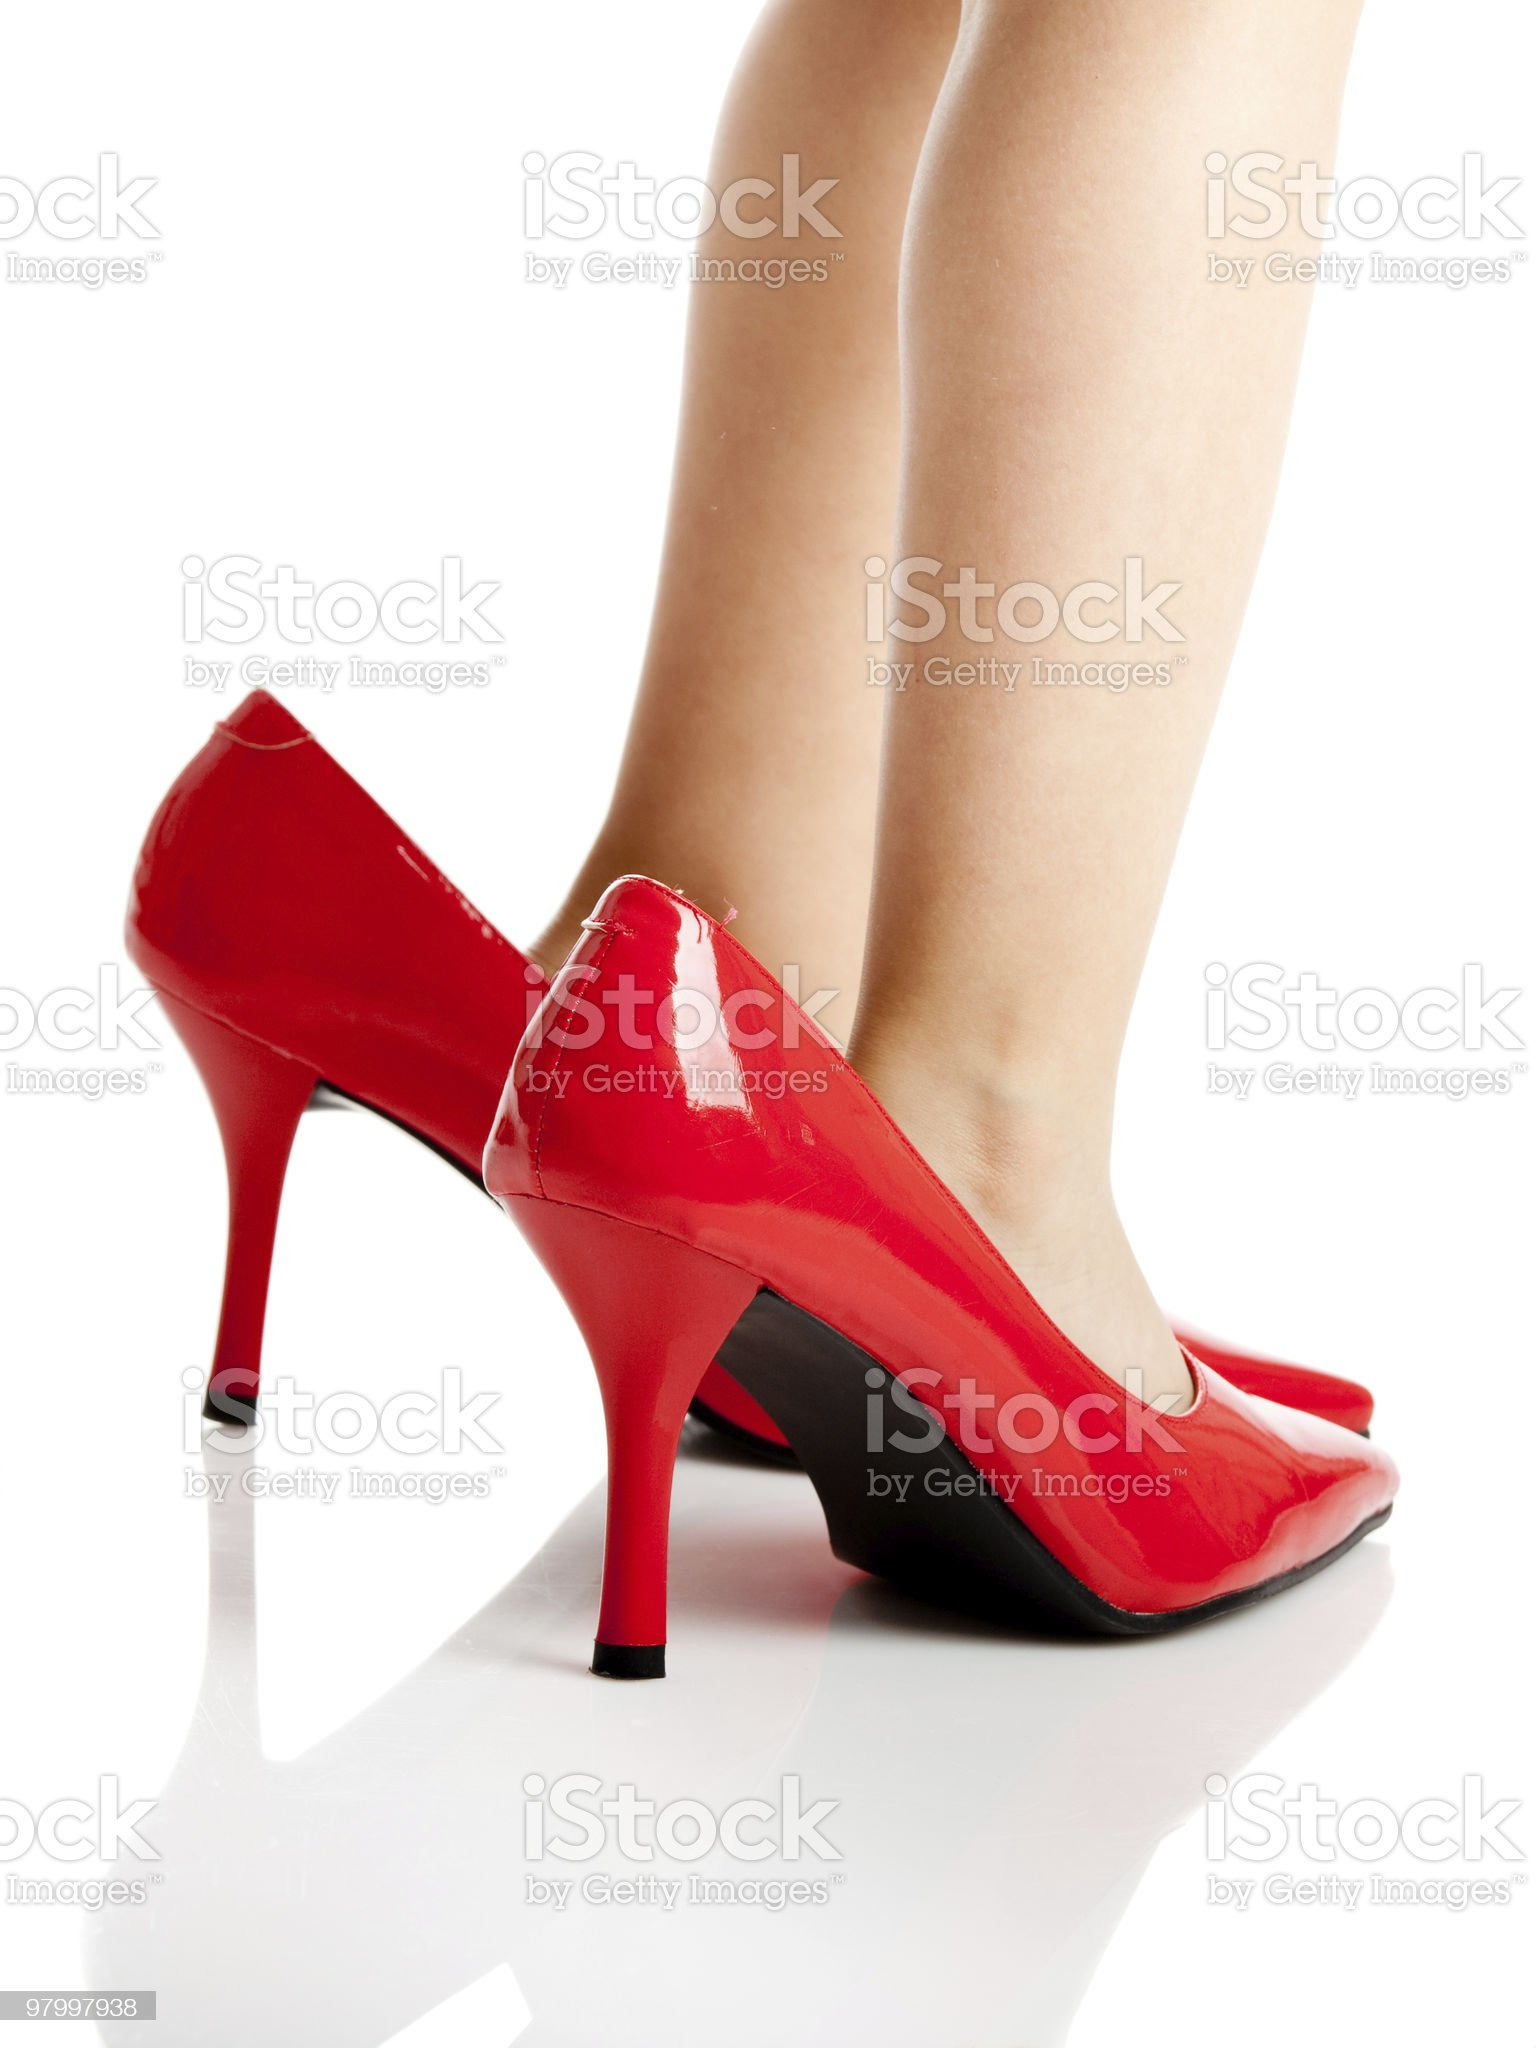 Kid wearing mother's red high heels pretending to be adult royalty-free stock photo